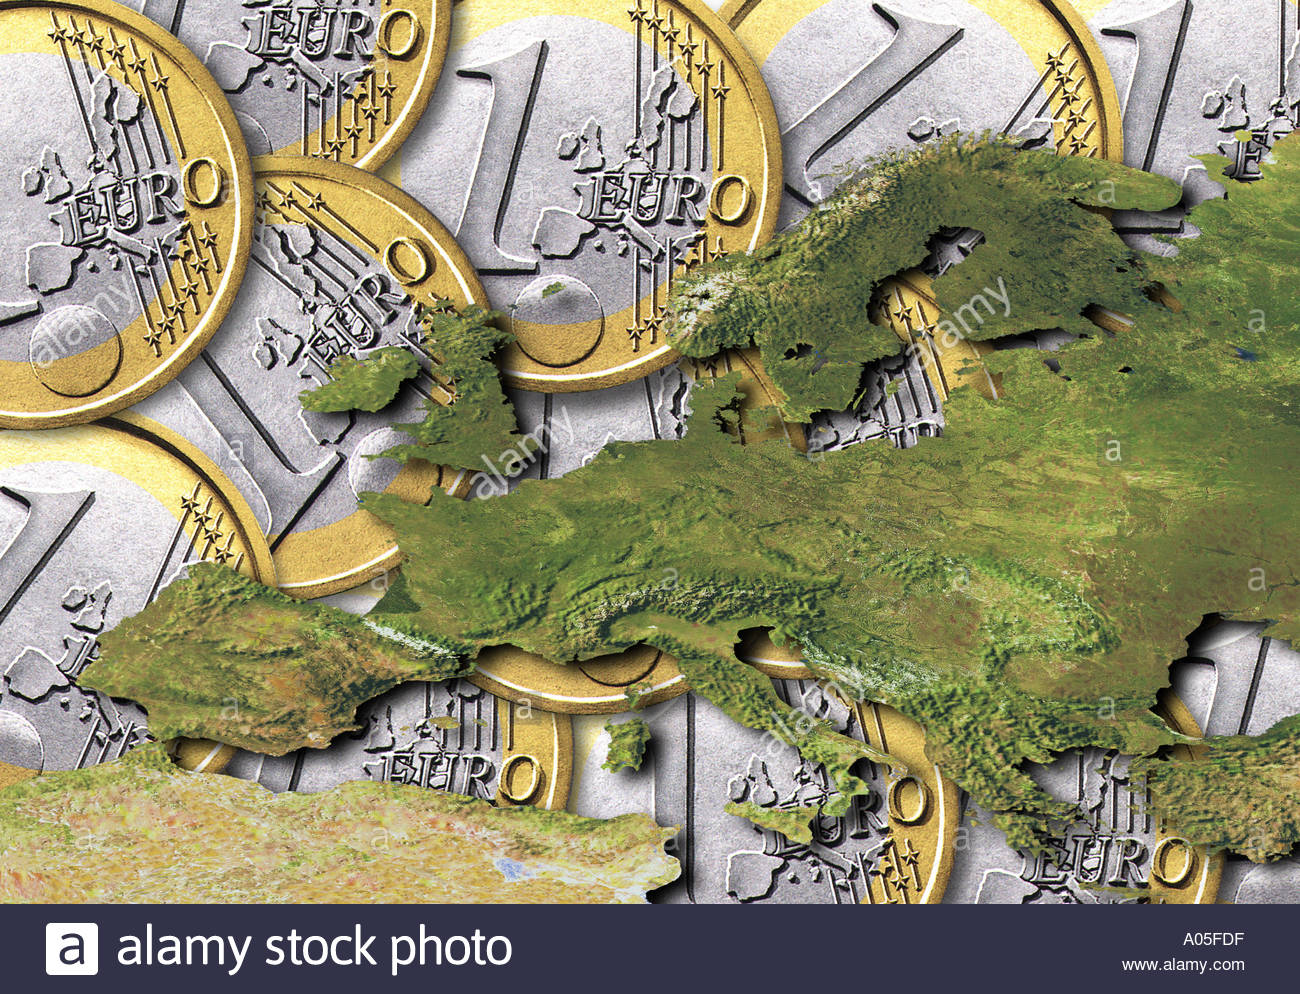 Europe over Euro coins - Stock Image